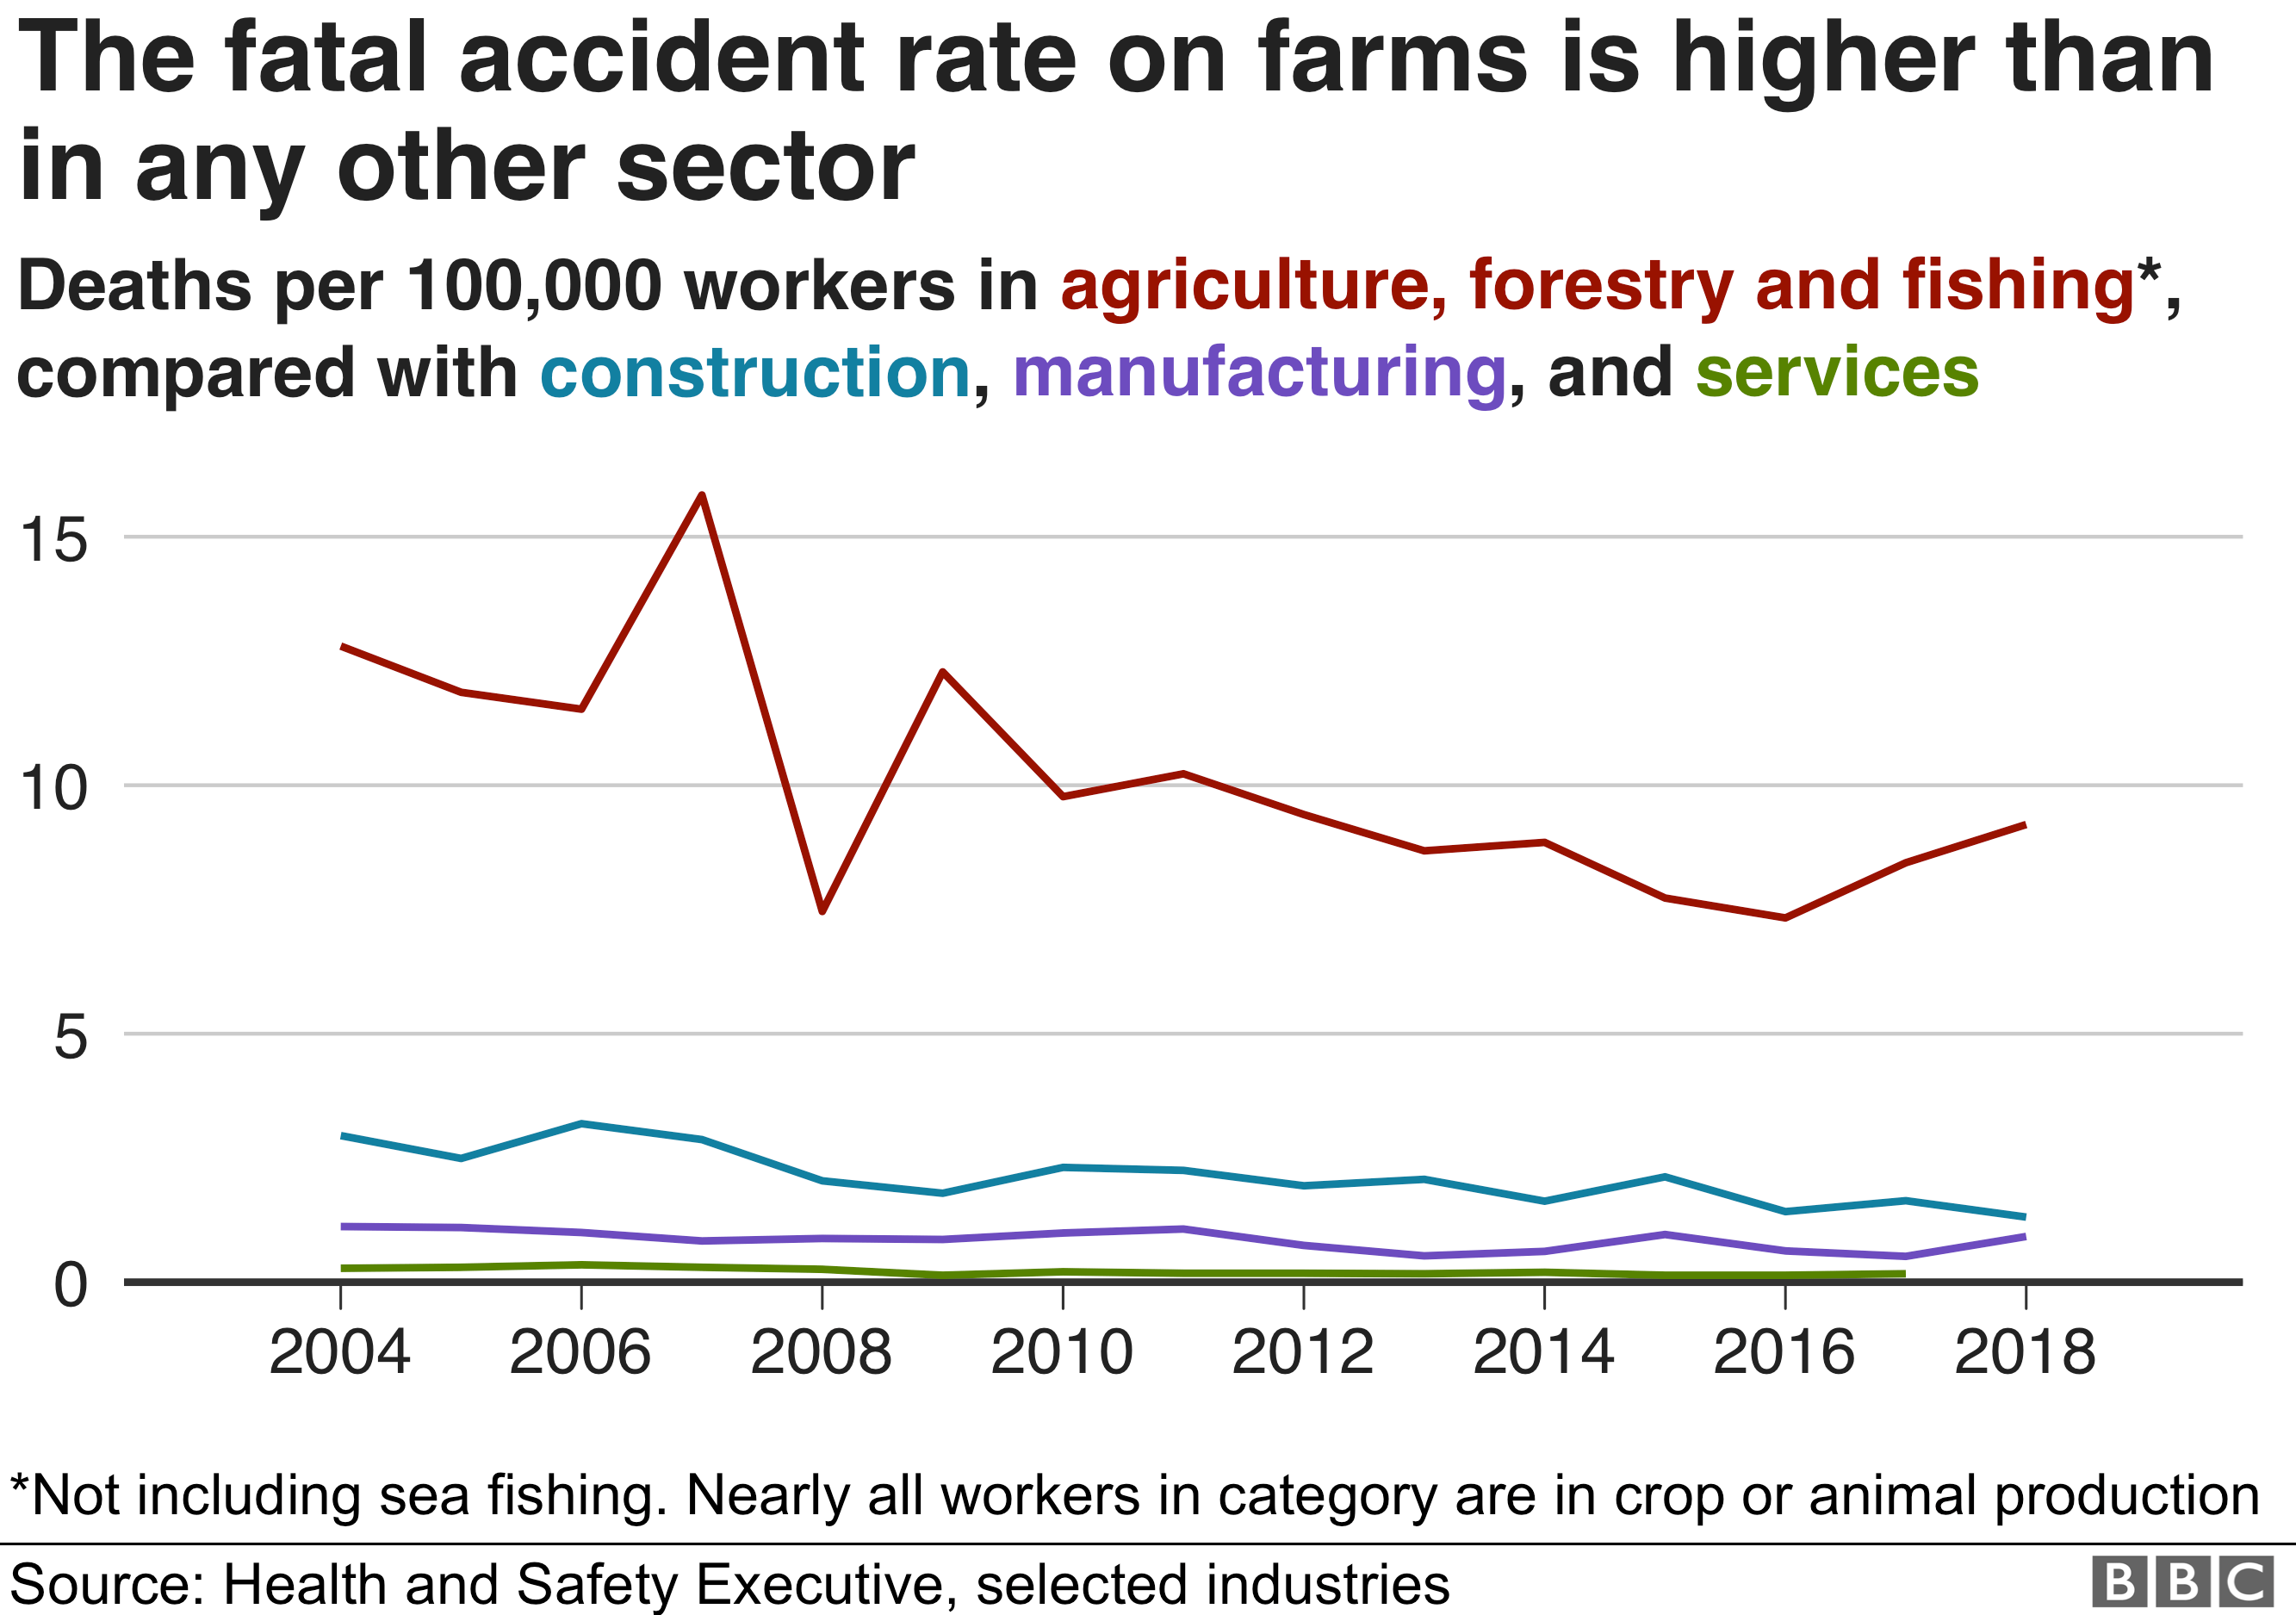 Timeseries chart showing how the fatal accident rate on farms is higher than any other sector, and about four times higher than construction